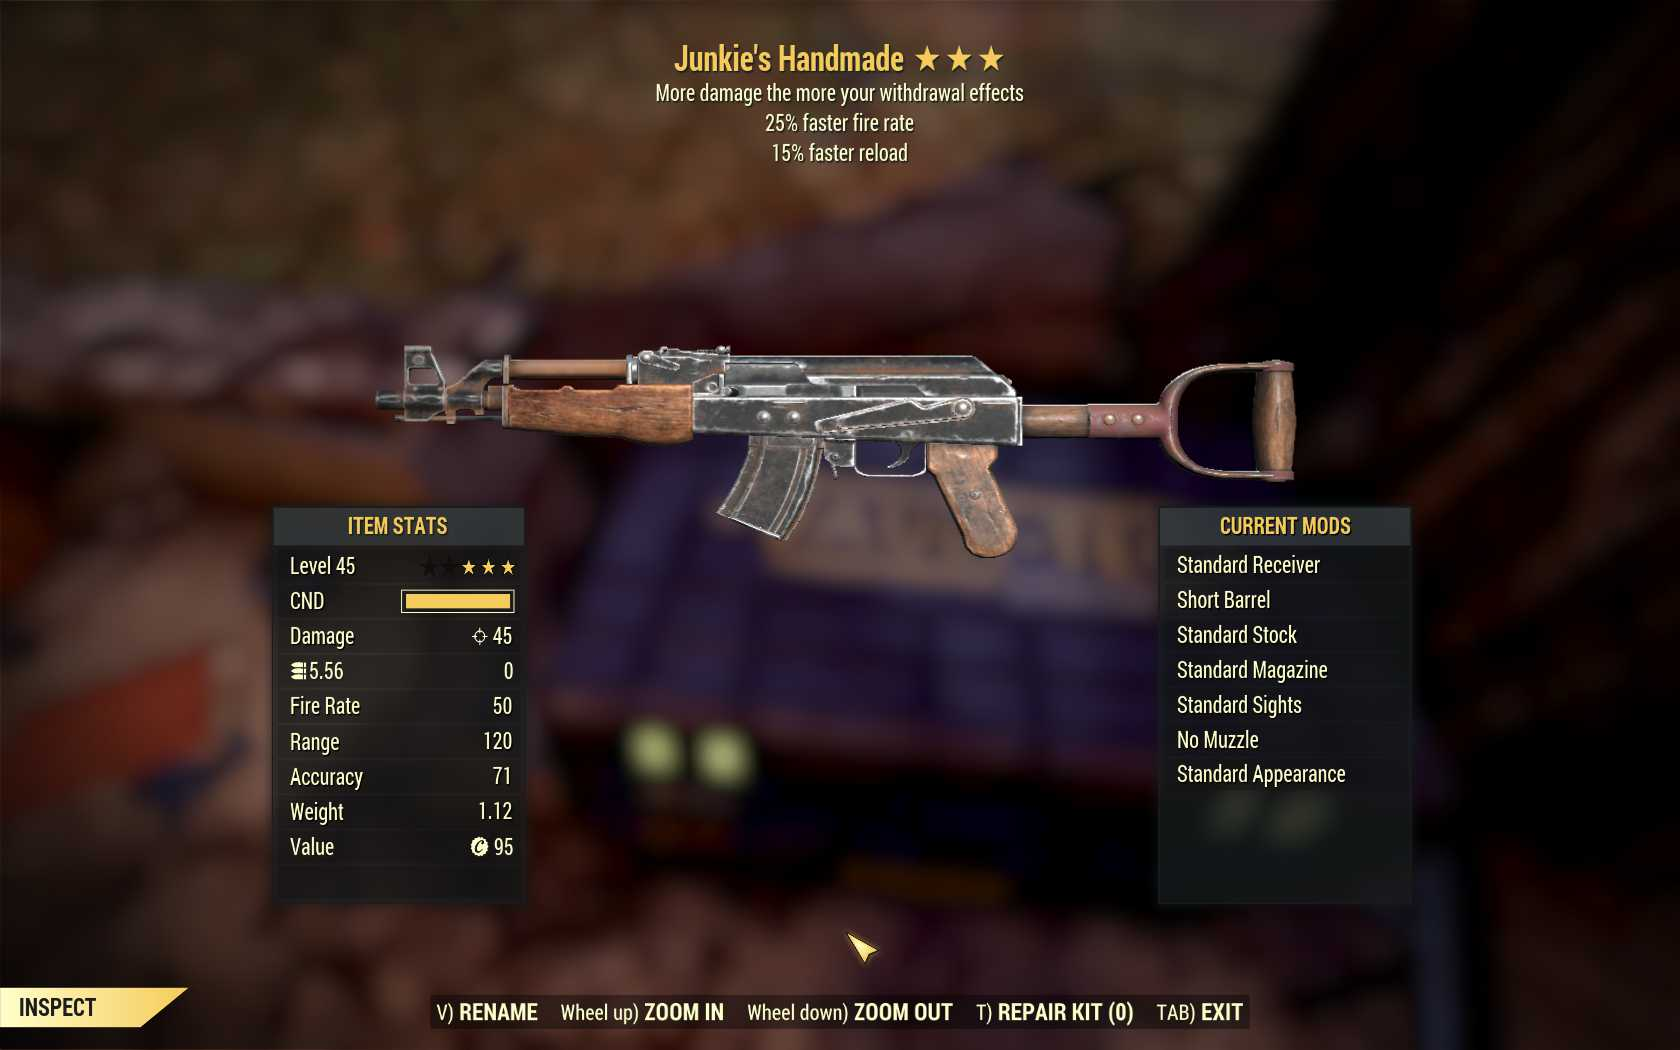 [3 Stars]Junkie's Handmade+25% faster fire rate+15% faster reload